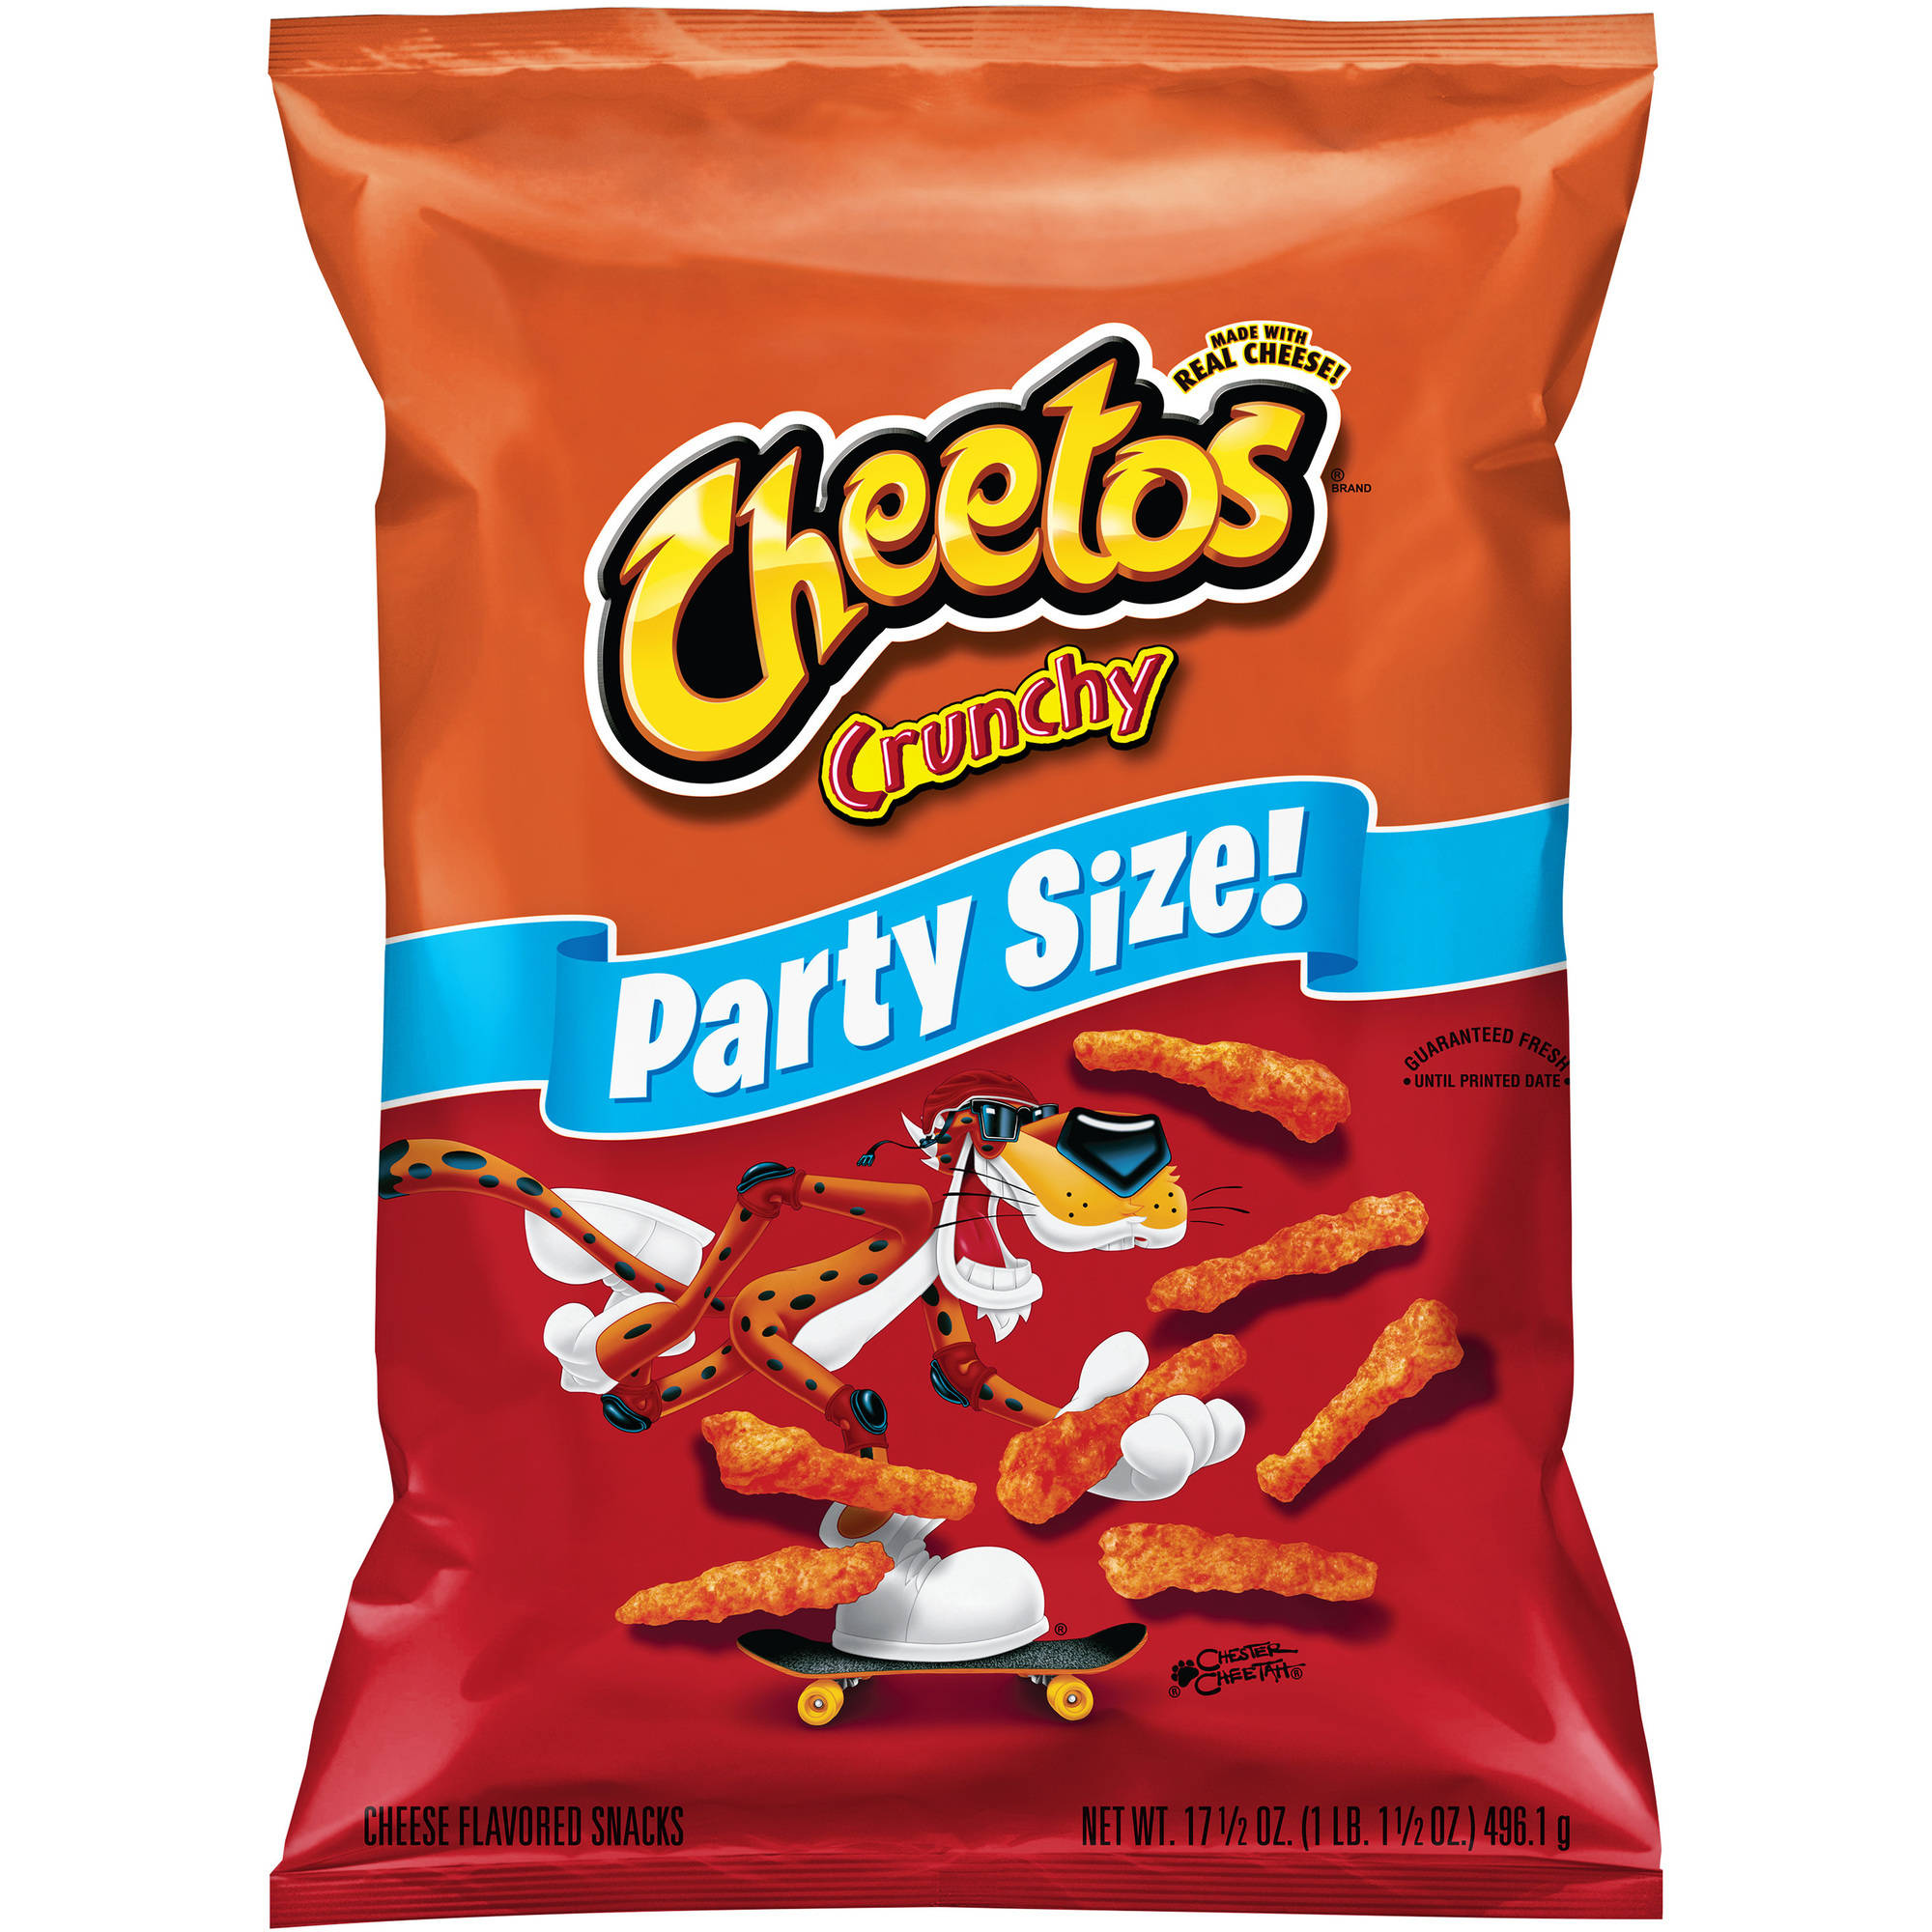 Cheetos Crunchy Cheese Flavored Snacks, Party Size, 17.5 oz.